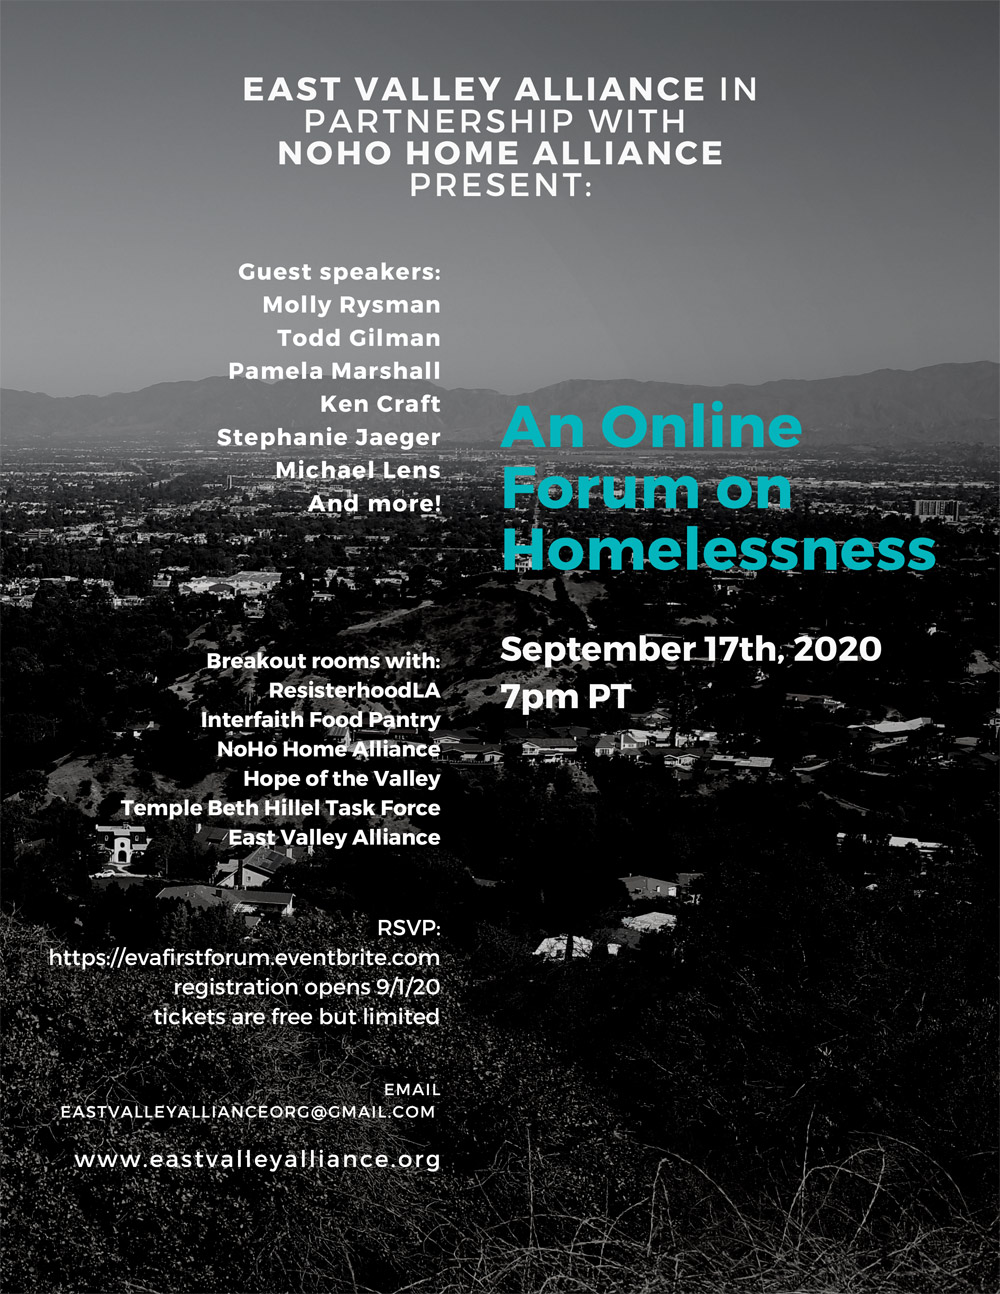 Forum on homelessness